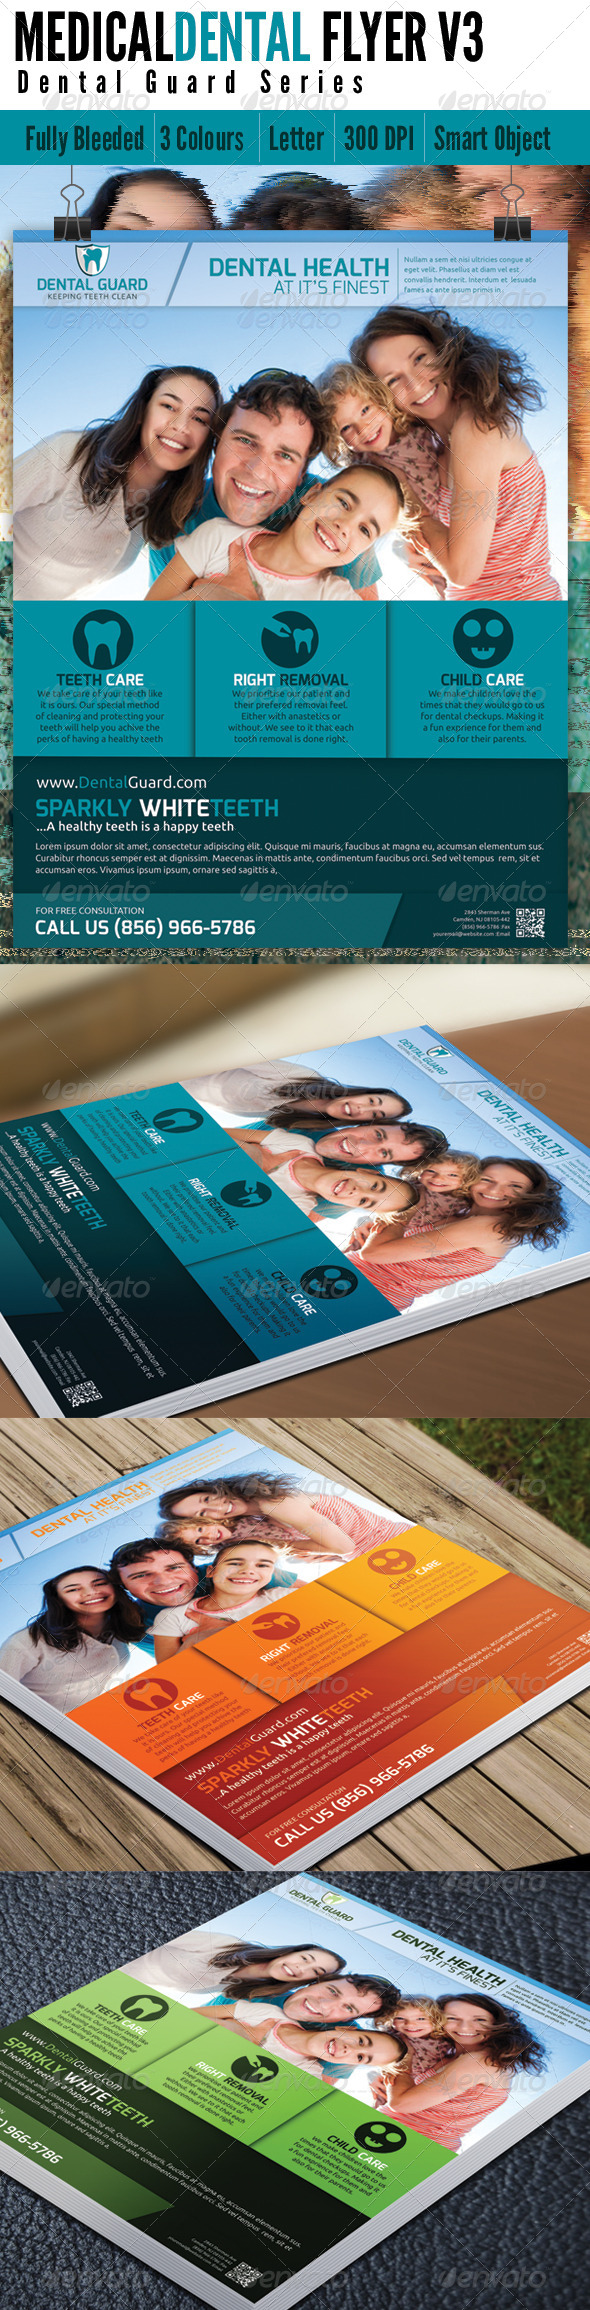 Medical Dental Flyer v3 - Corporate Flyers